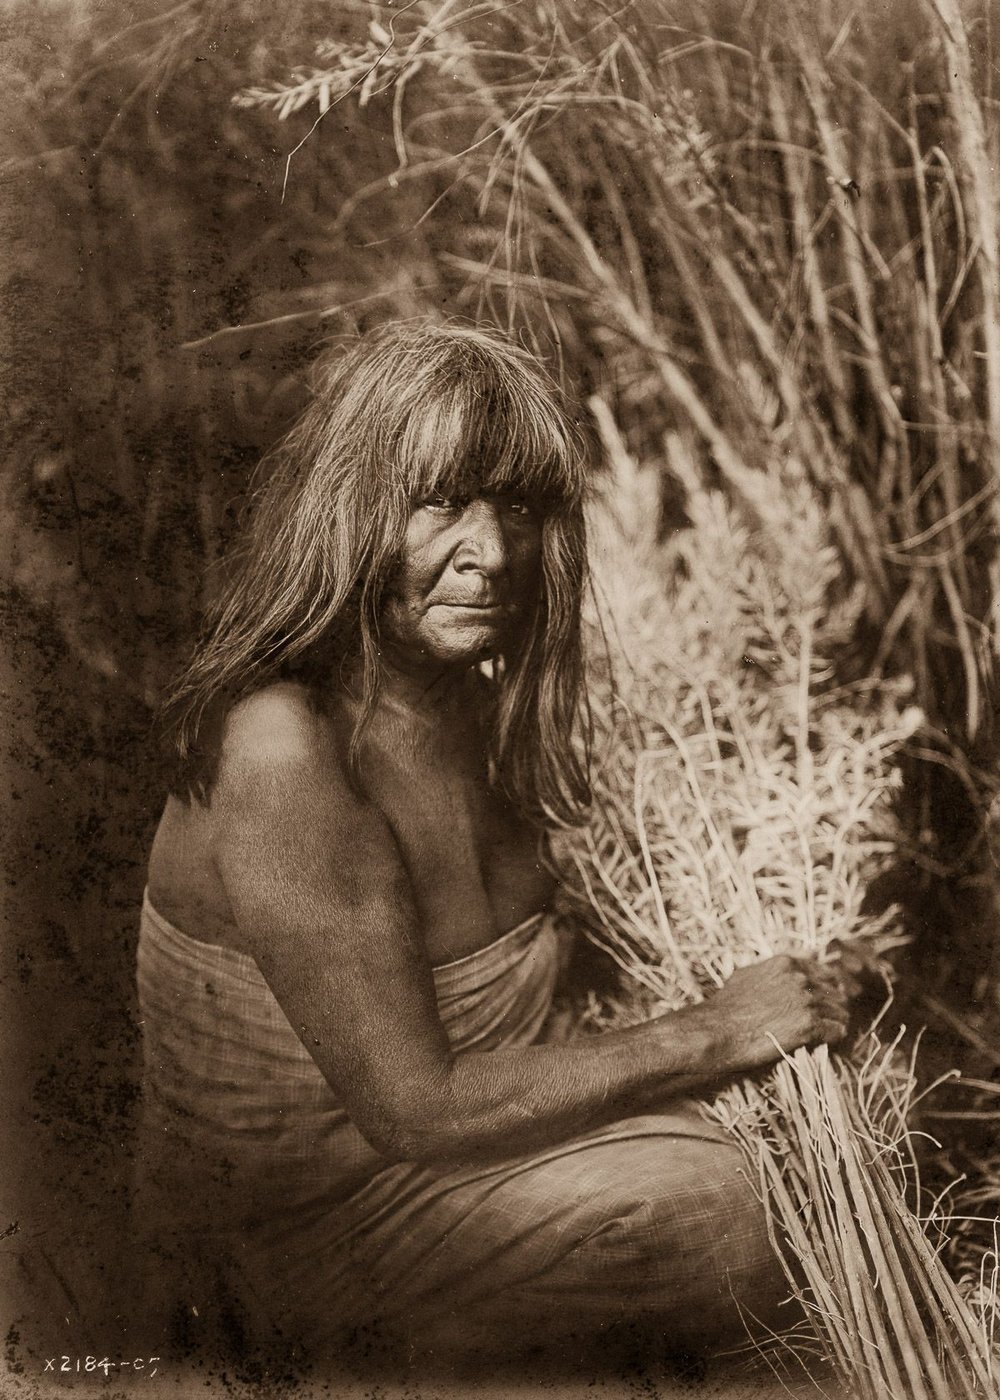 A Maricopa woman with arrow-brush stalks,  1907.  ©EDWARD S. CURTIS/LIBRARY OF CONGRESS